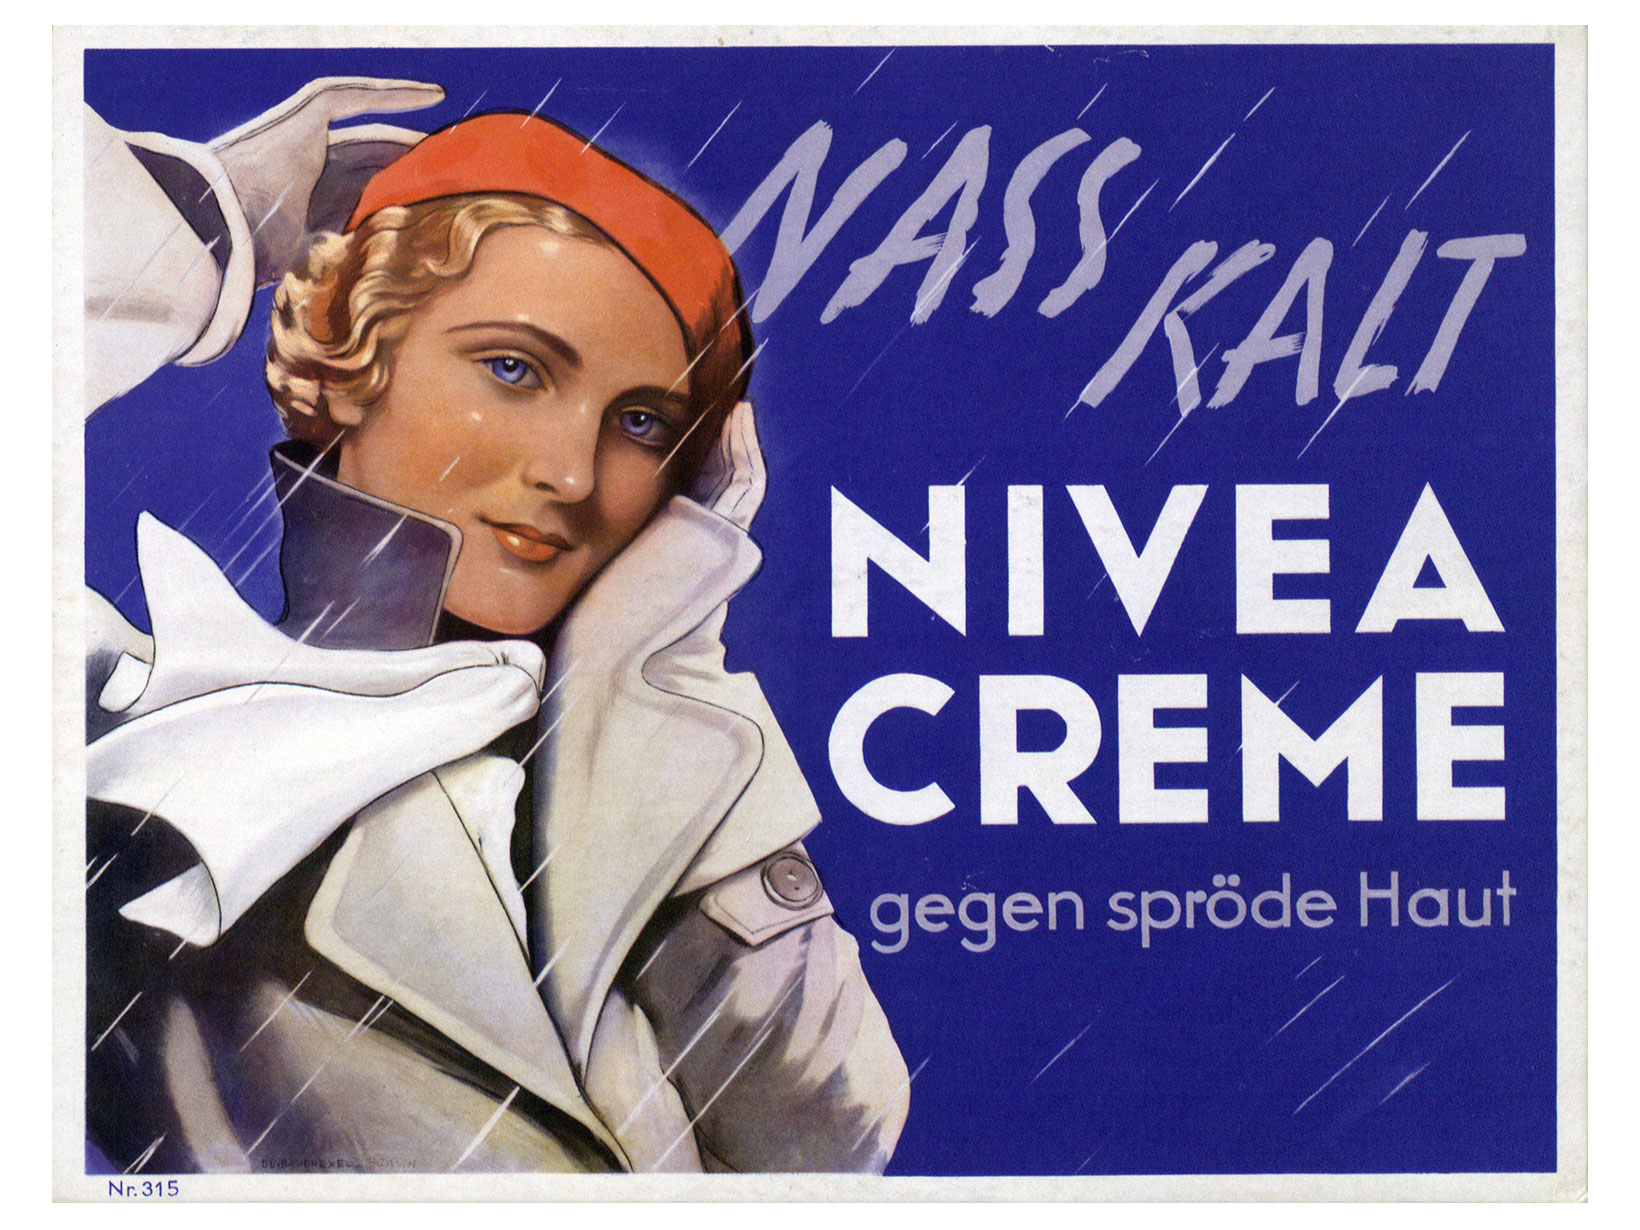 Photo © Nivea / Beiersdorf | NIVEA advertising poster from 1935: NIVEA Creme for rough skin